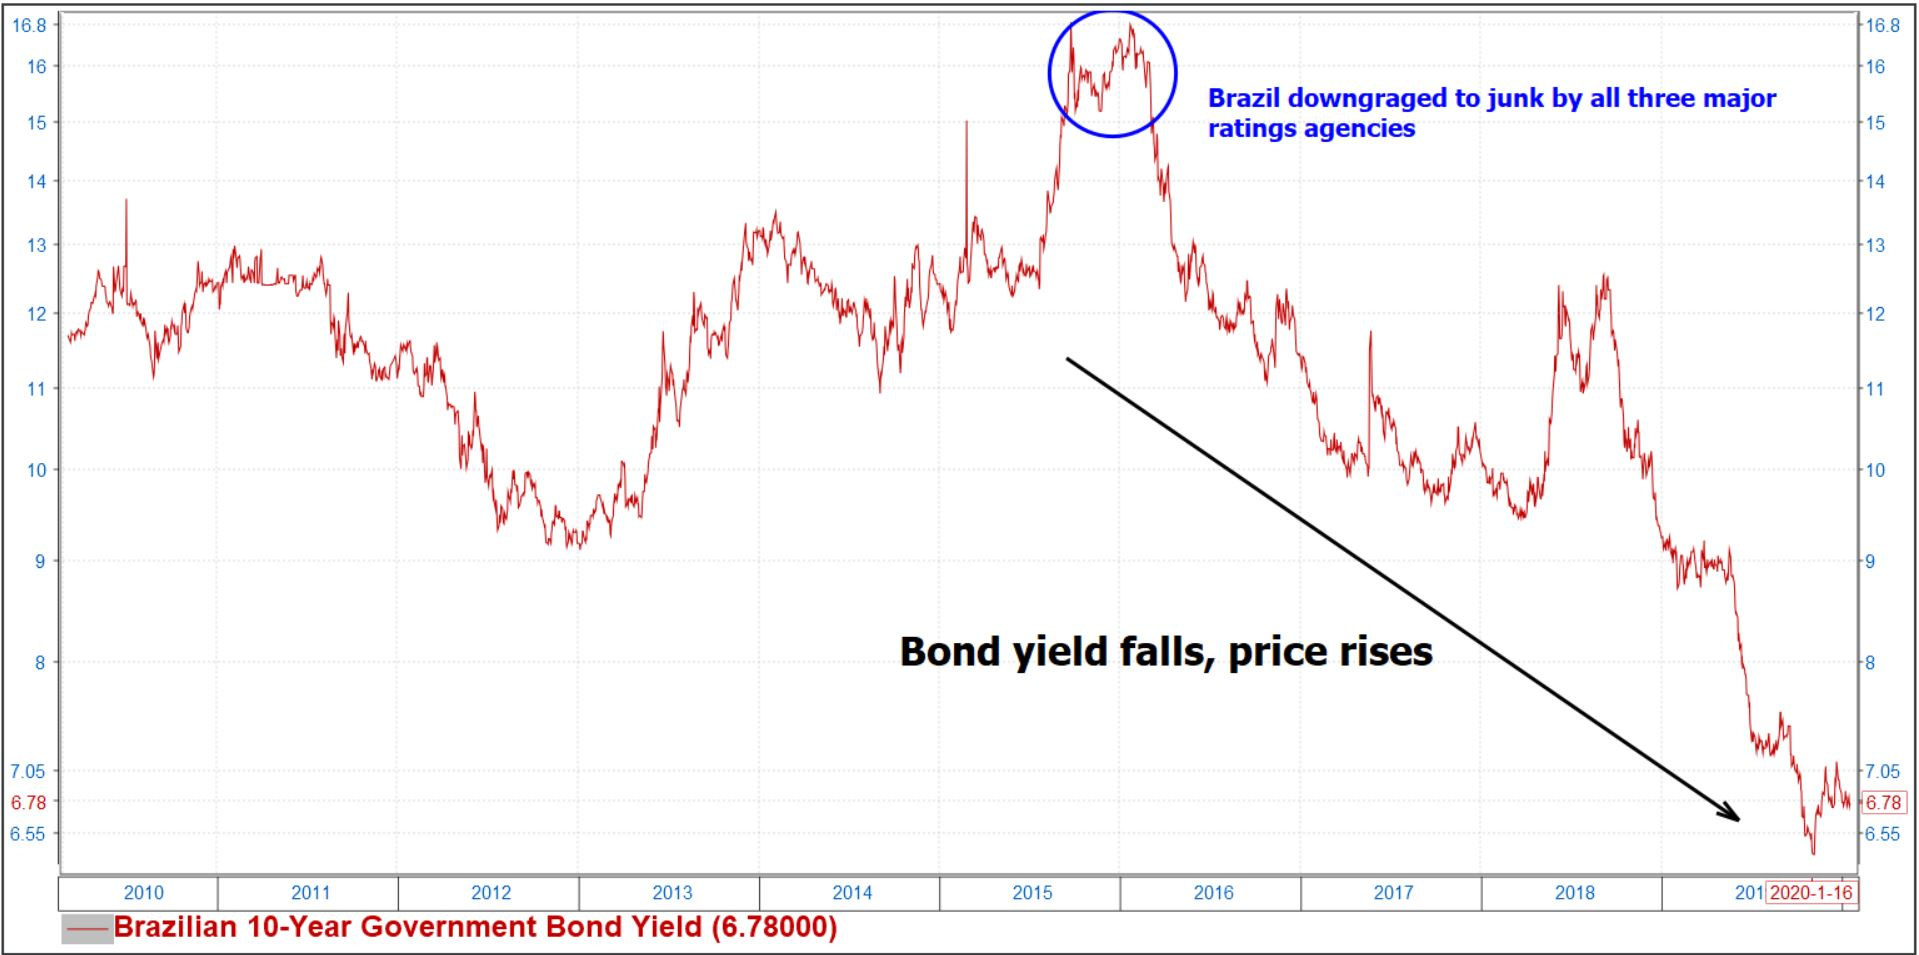 Brazilian bonds yields fell after their downgrade